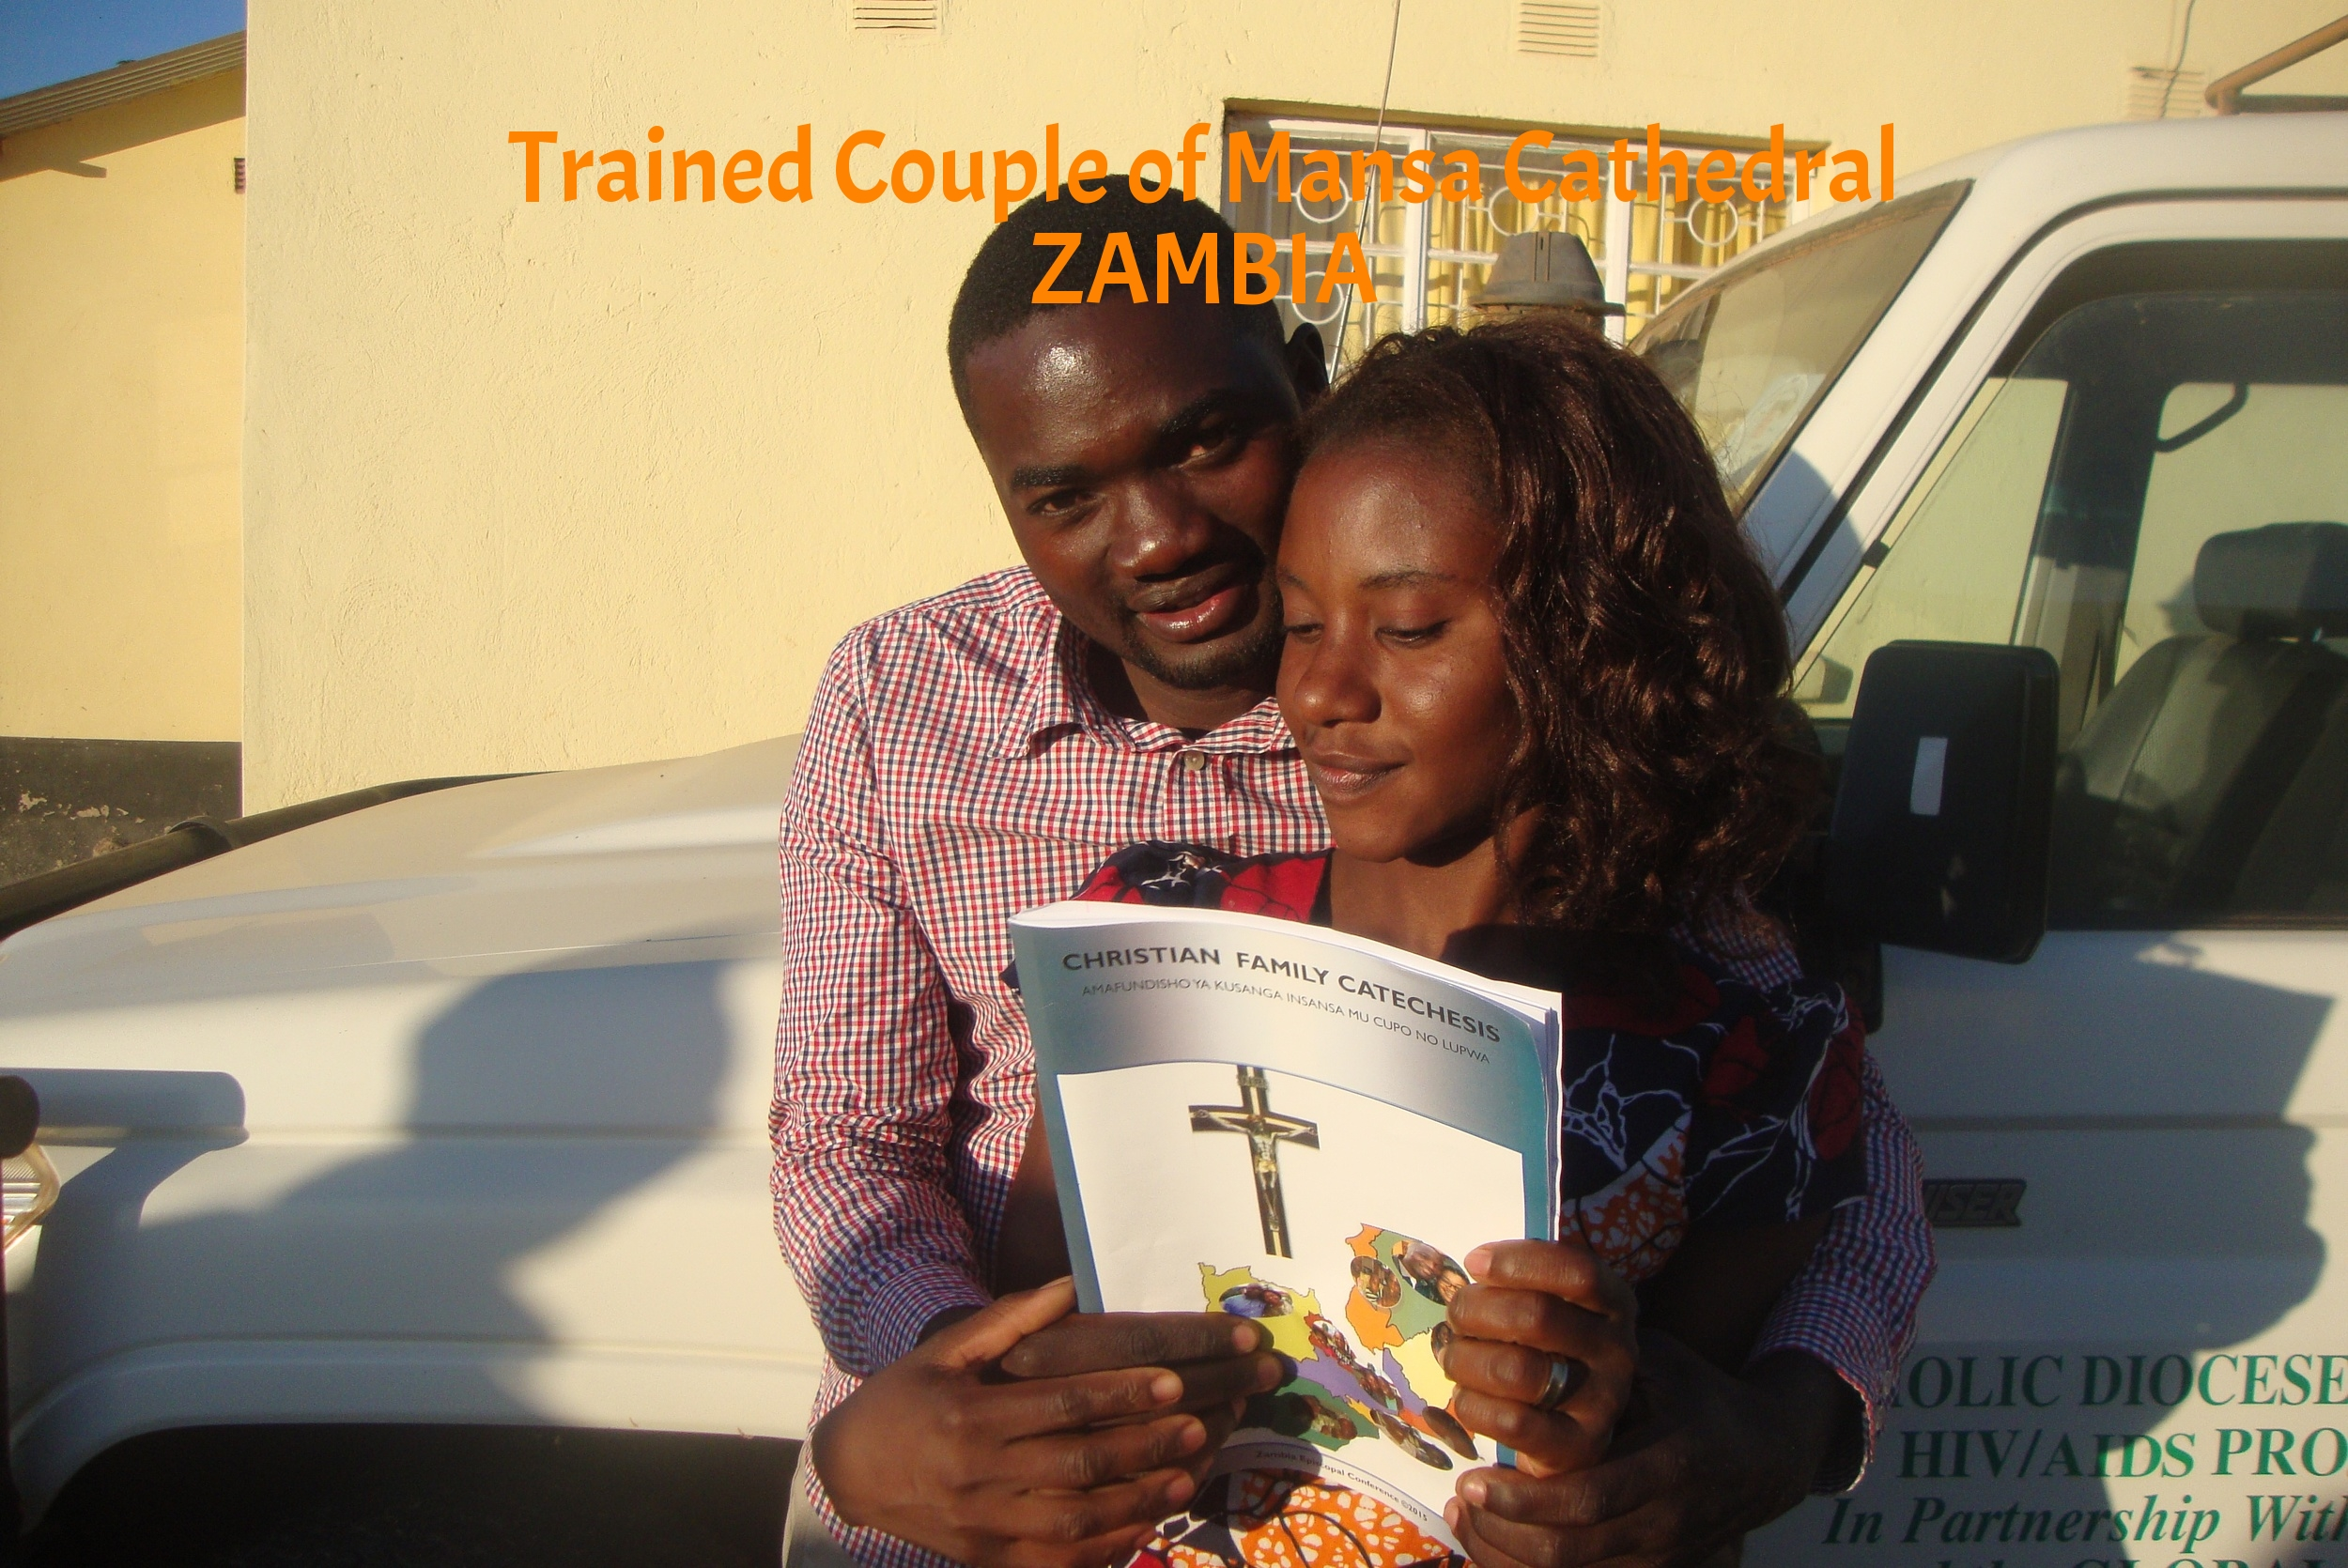 Trained Couple of Mansa Cathedral.jpg